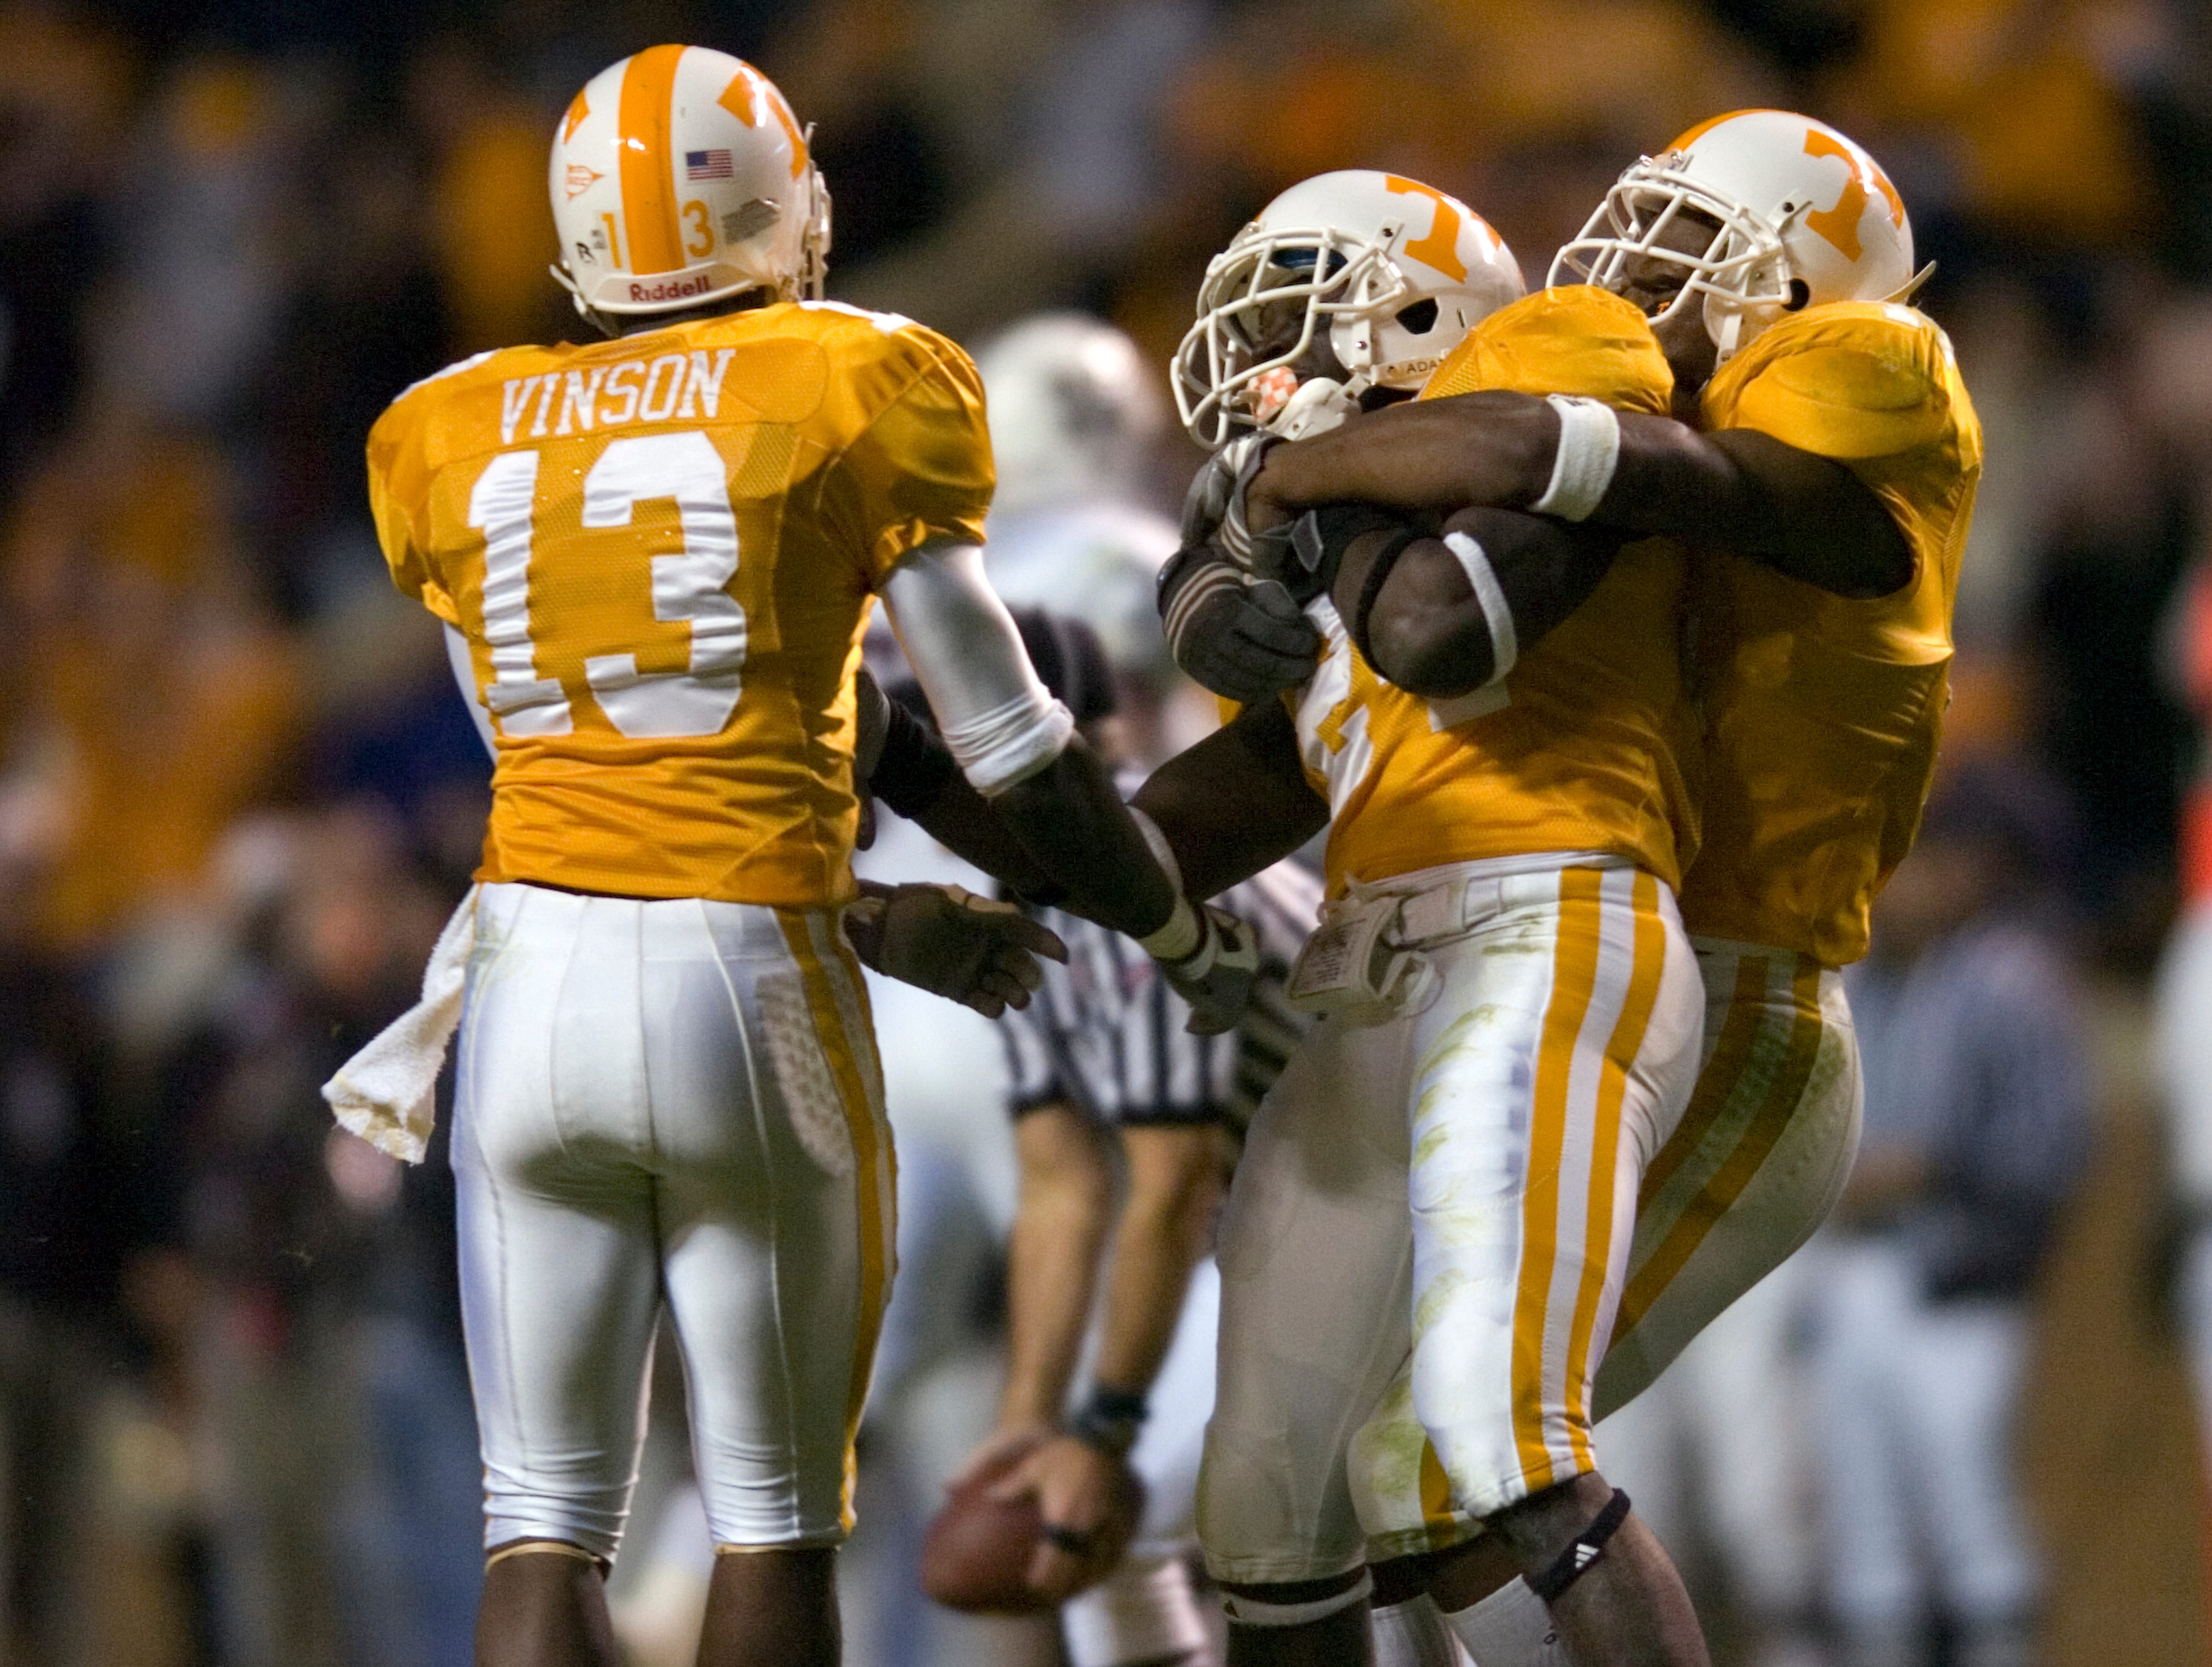 SAUL YOUNG/KNOXVILLE NEWS SENTINEL - Saturday, October 18, 2008 Tennessee defensive back Brent Vinson (13), left, and safety Eric Berry (14), right, celebrate with DeAngelo Willingham after Willingham  intercepted a Mississippi State pass on Saturday at Neyland Stadium. The interception was one of three by the Tennessee secondary as the Vols rolled to 34-3 win over the Bulldogs. The Vols improved their record to 3-4, 1-3 SEC.